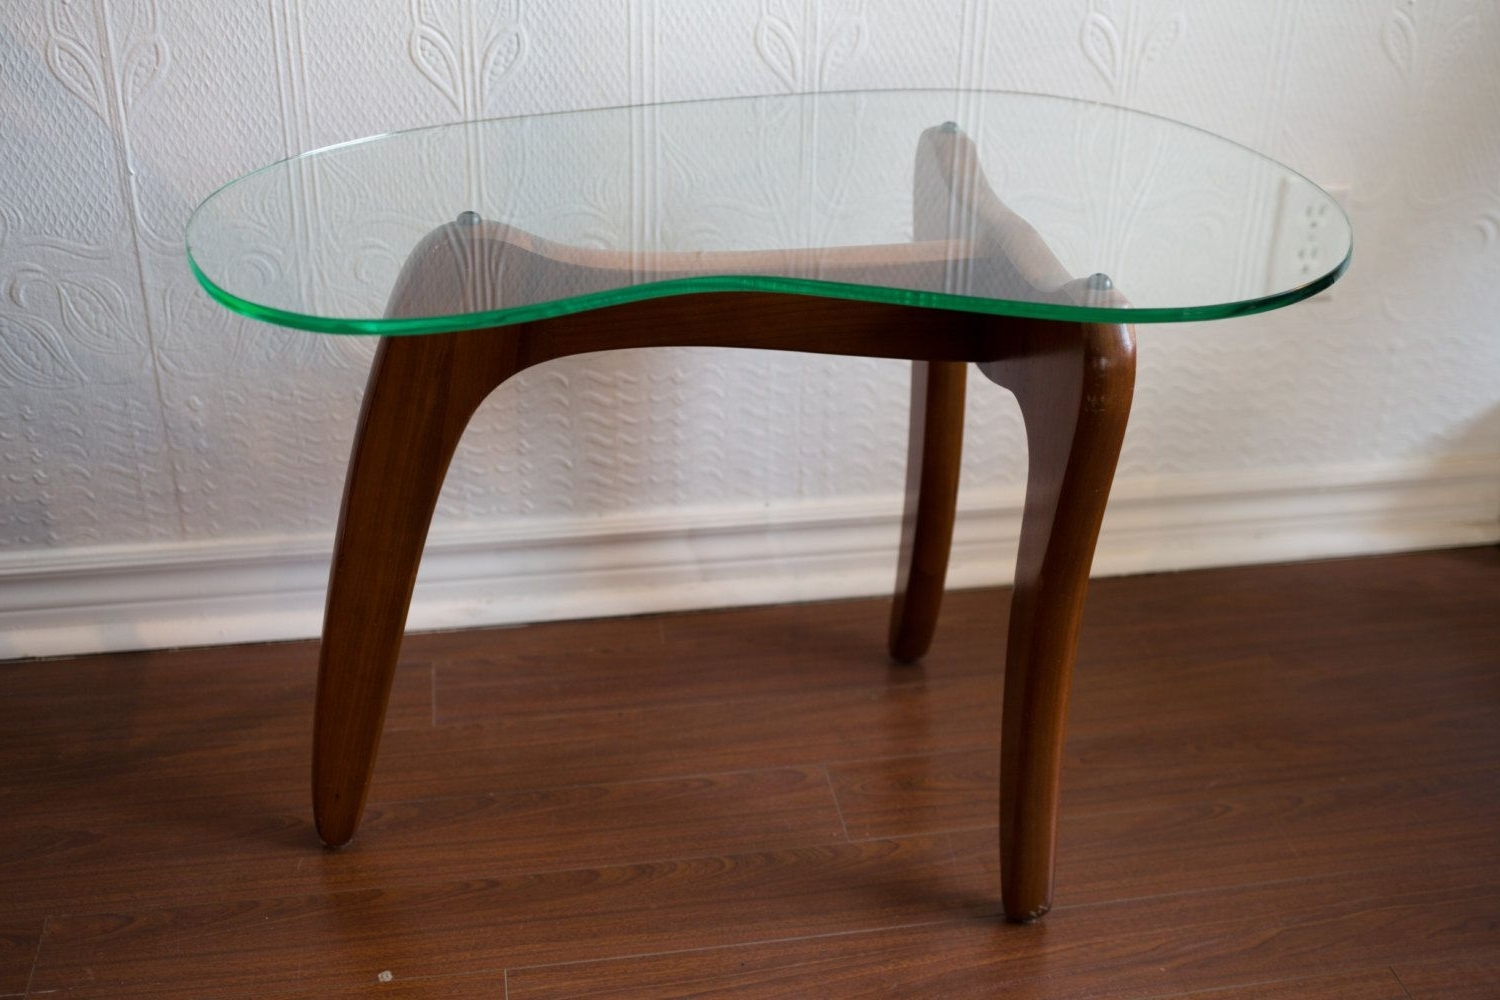 Toronto – Mid Century Modern Small Wood Coffee Table With Kidney With Regard To Widely Used Jelly Bean Coffee Tables (View 2 of 20)